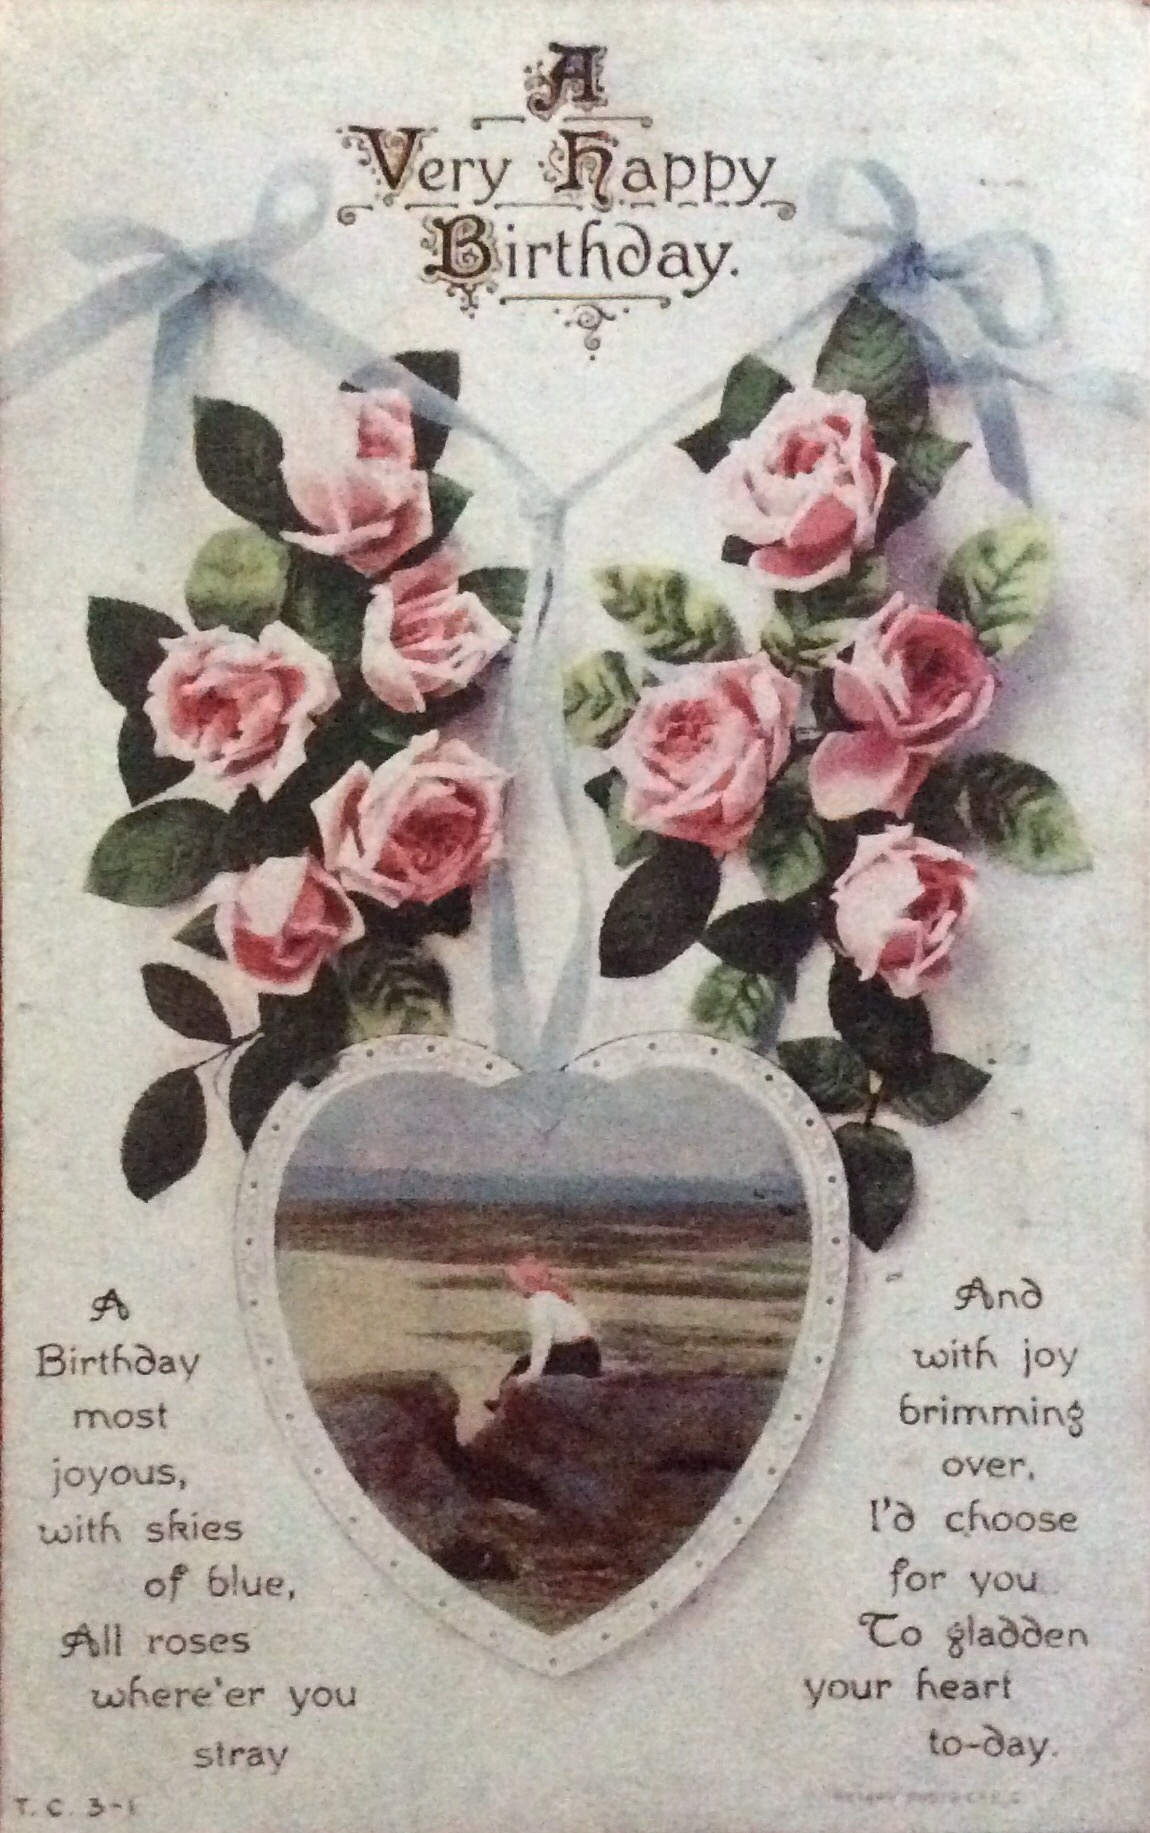 1916 A card posted to someone in the same house